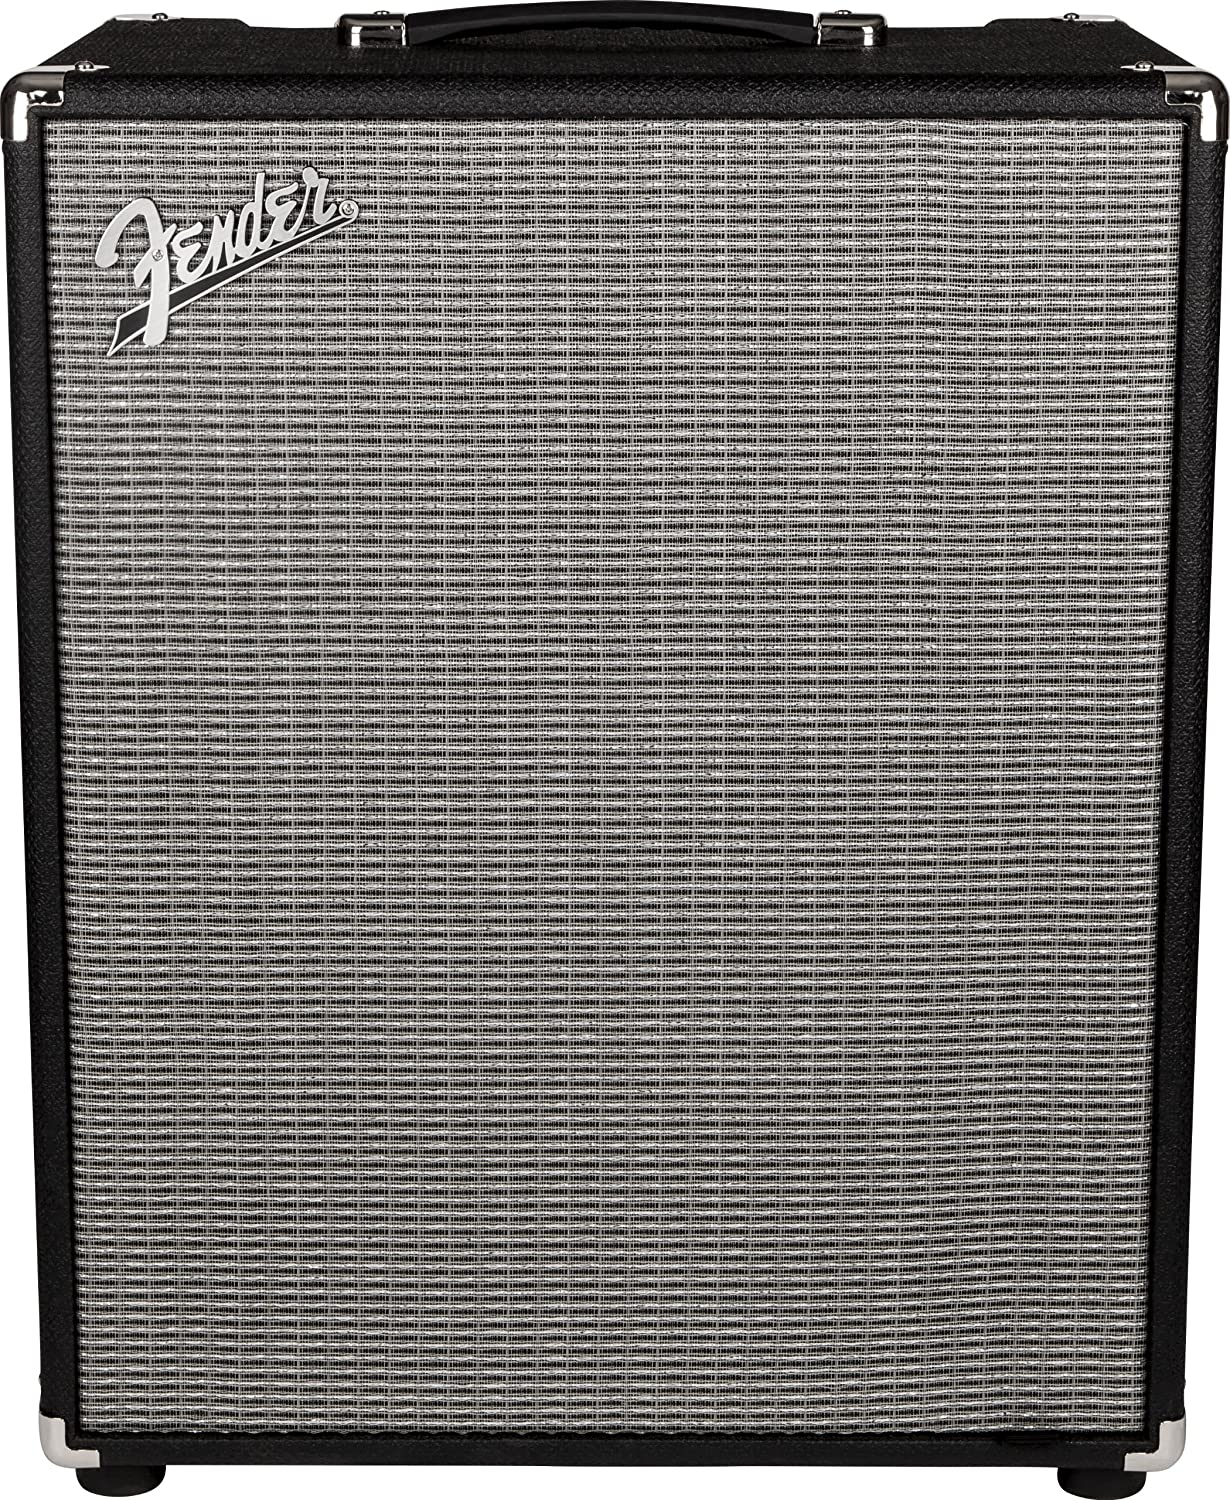 Top 10 Best Bass Combo Amp Under $400, $500 to $600 5